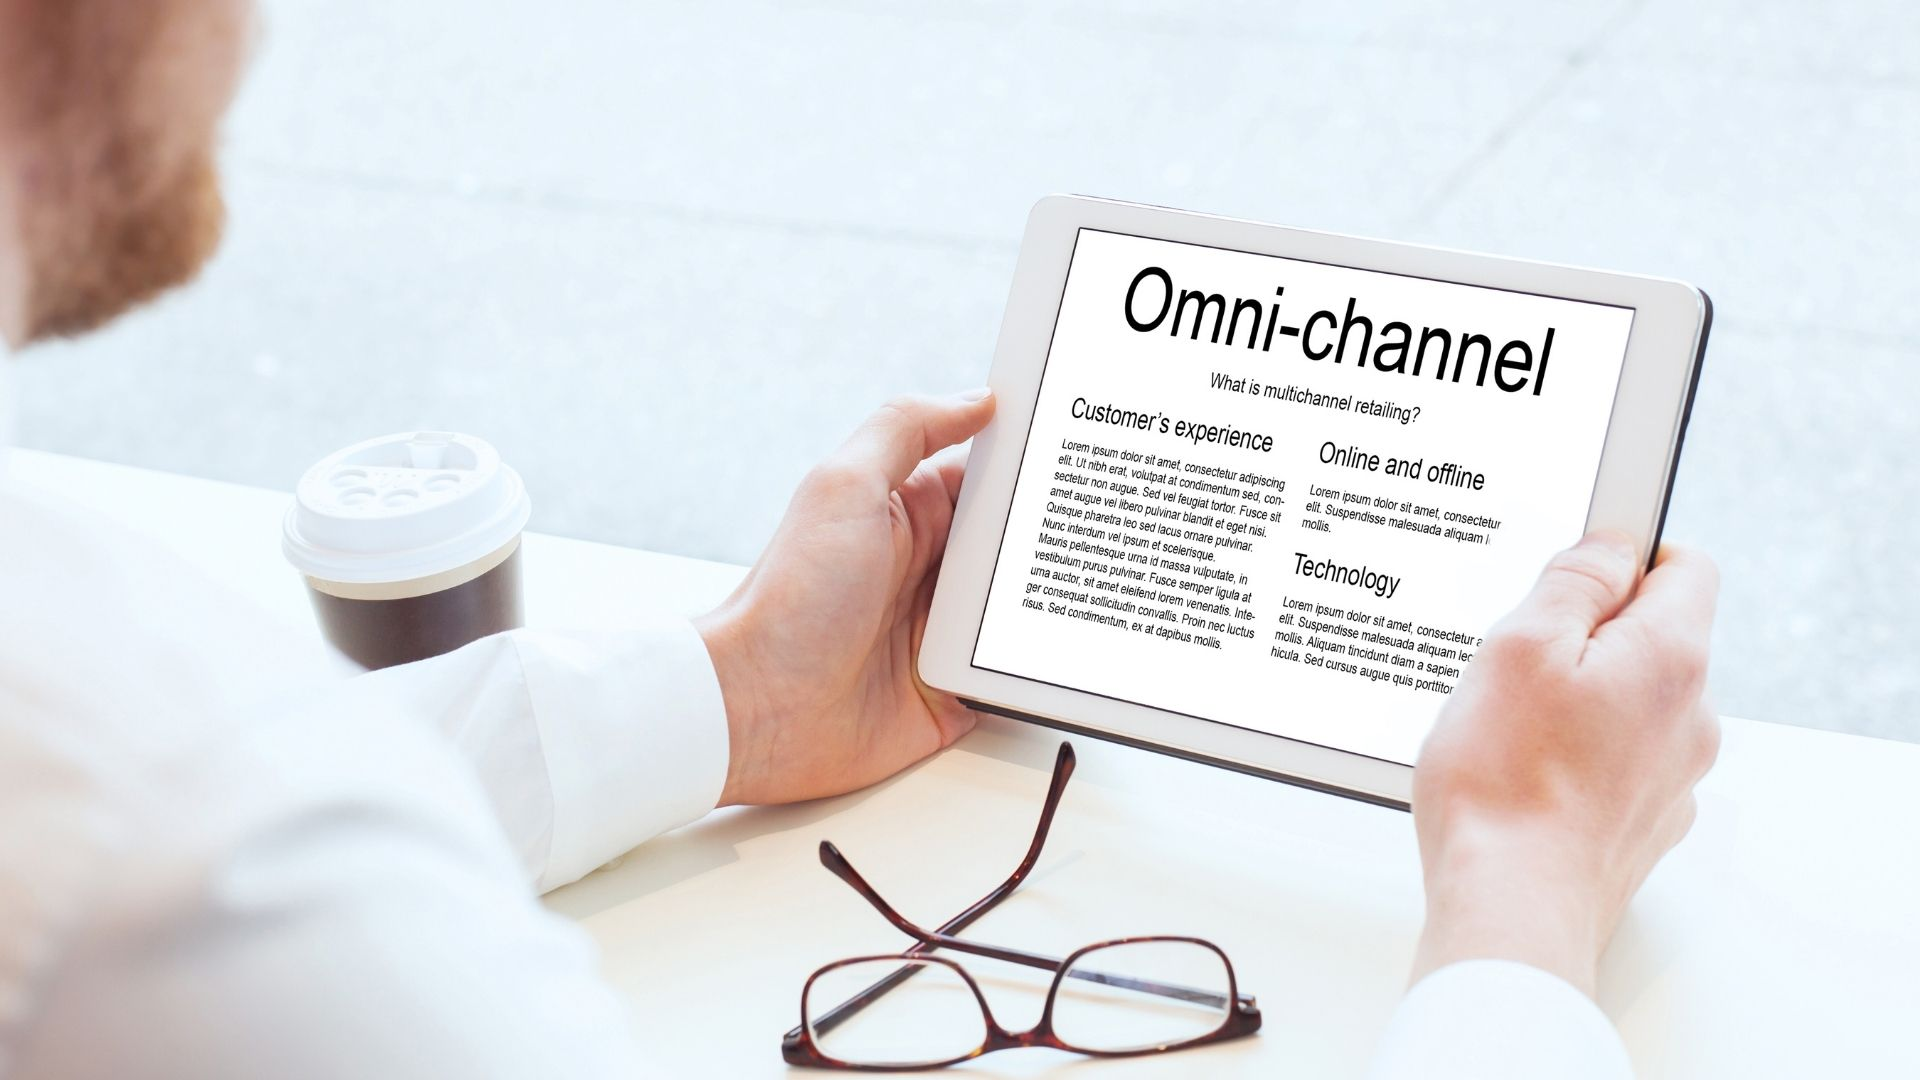 Forget online and offline. When it comes to shopping and payment, think omnichannel 1